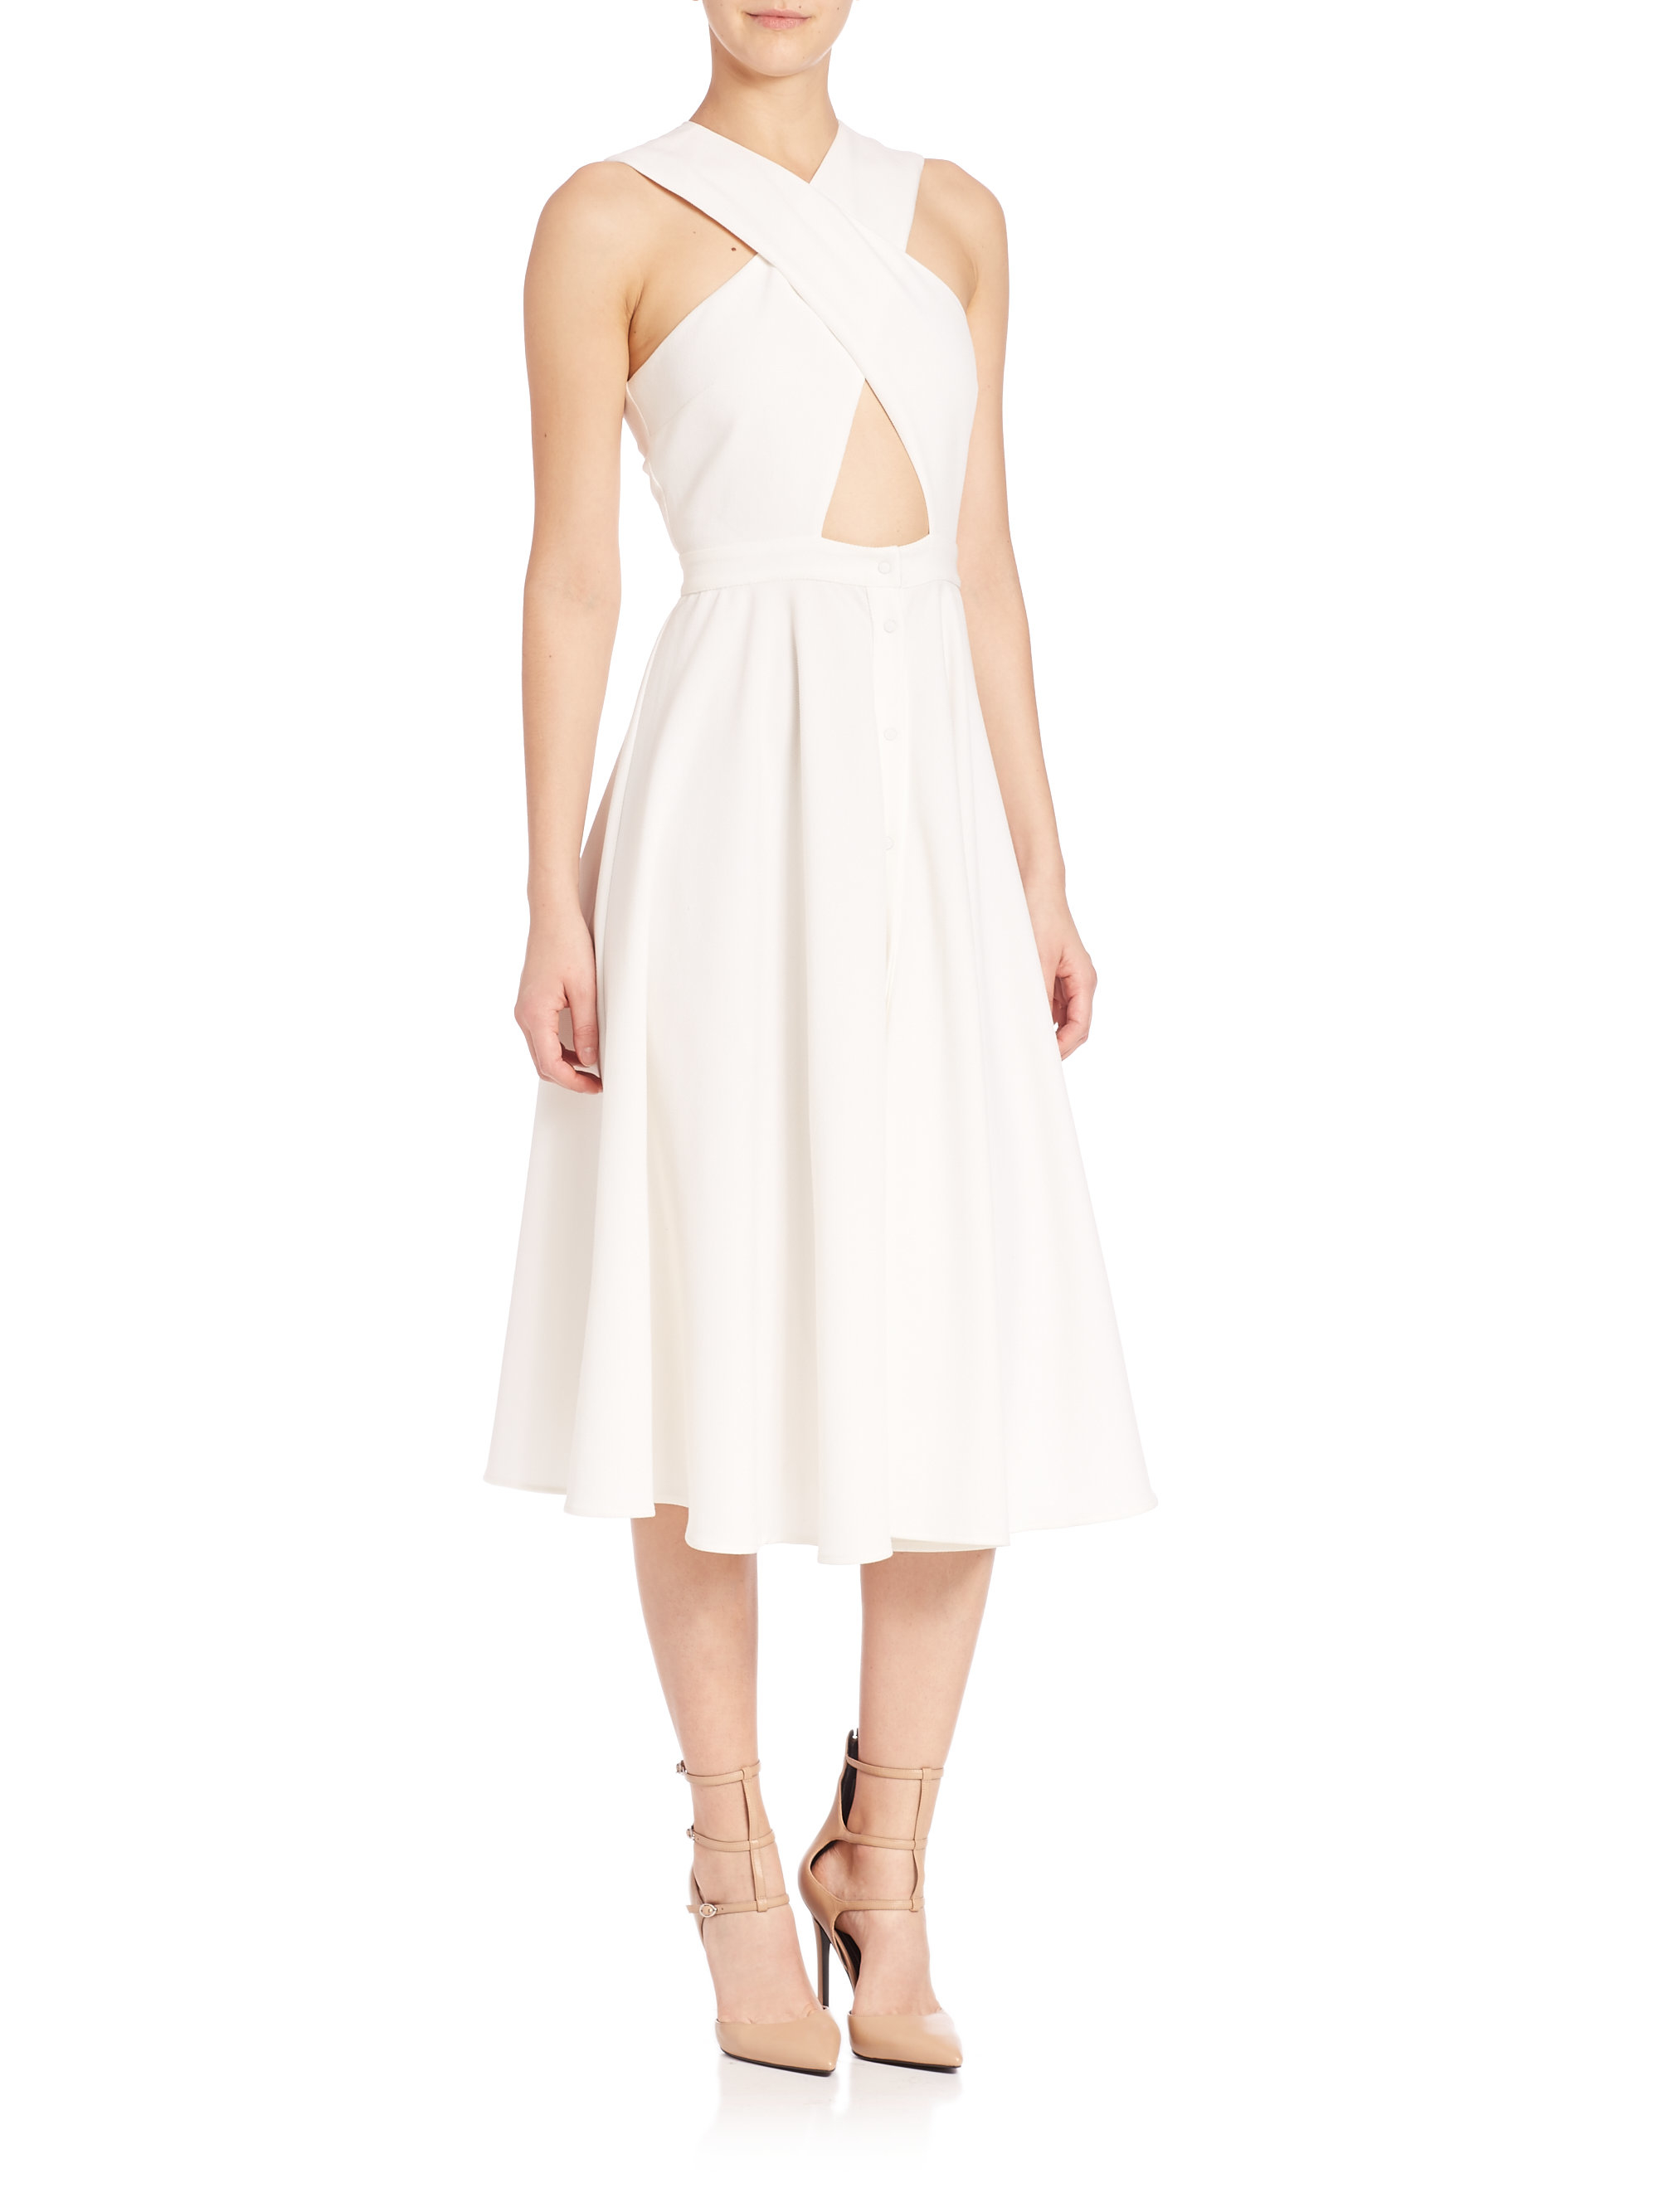 Lyst Kendall Kylie Cross Front Crepe Dress In White